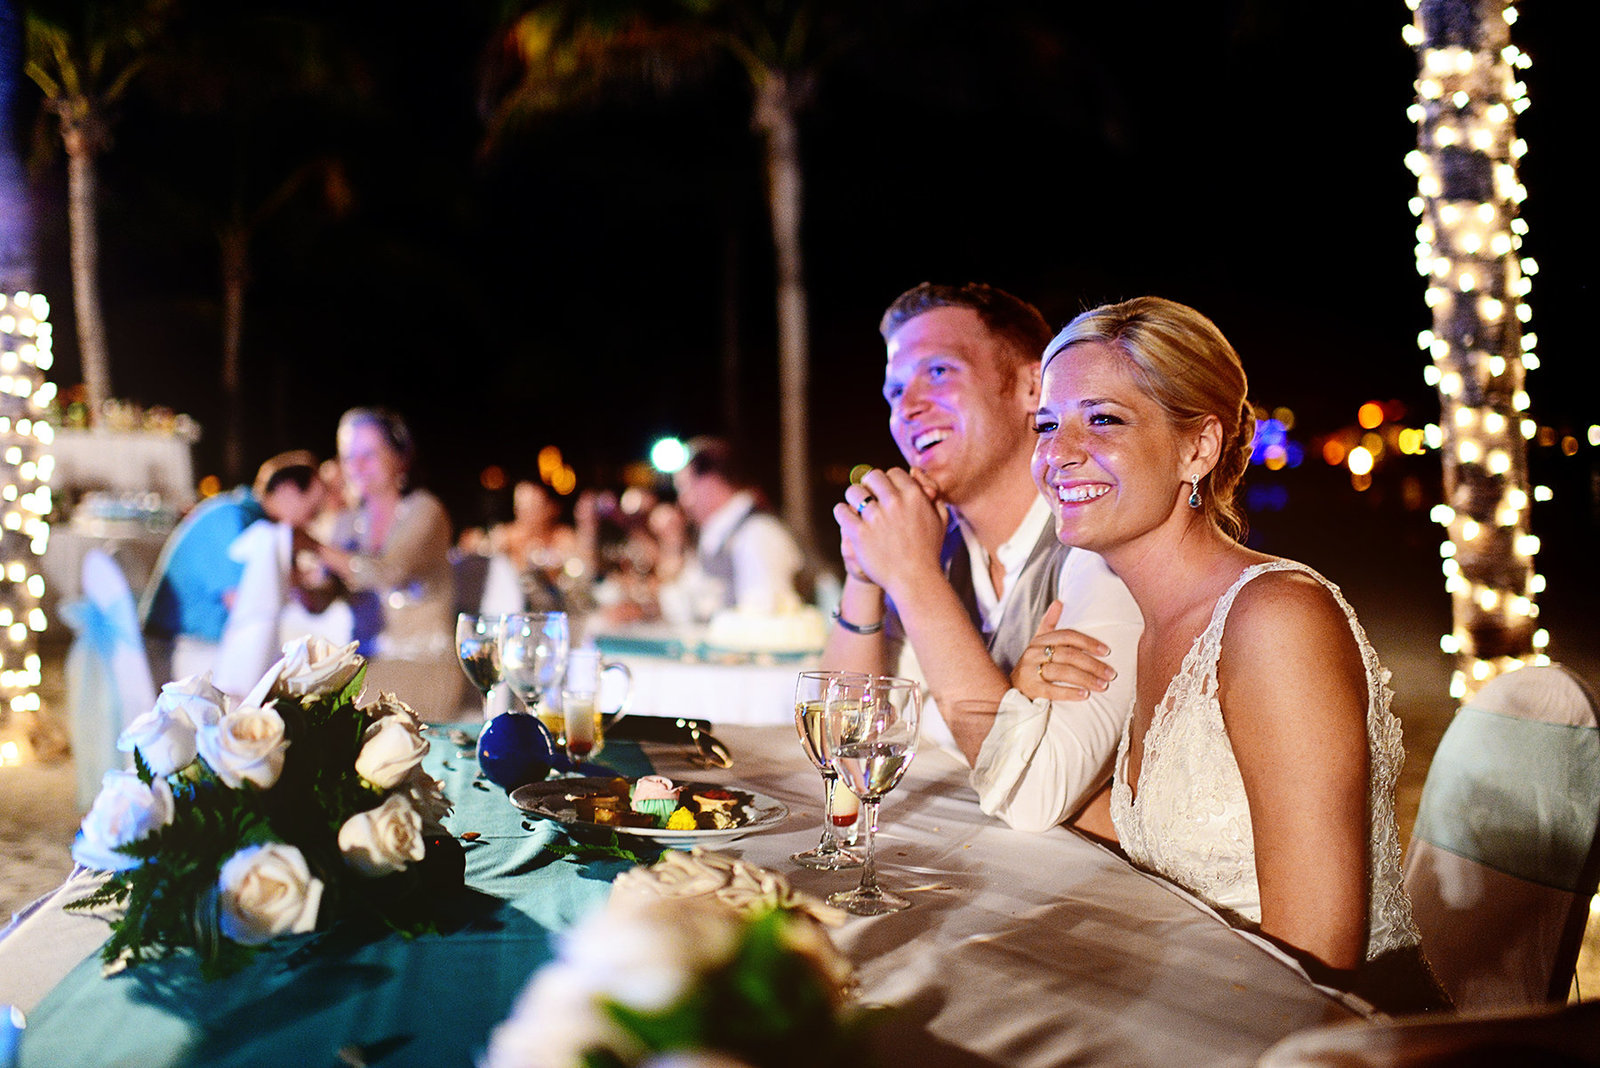 barcelo maya beach resort wedding destination wedding photographer bryan newfield photography 44